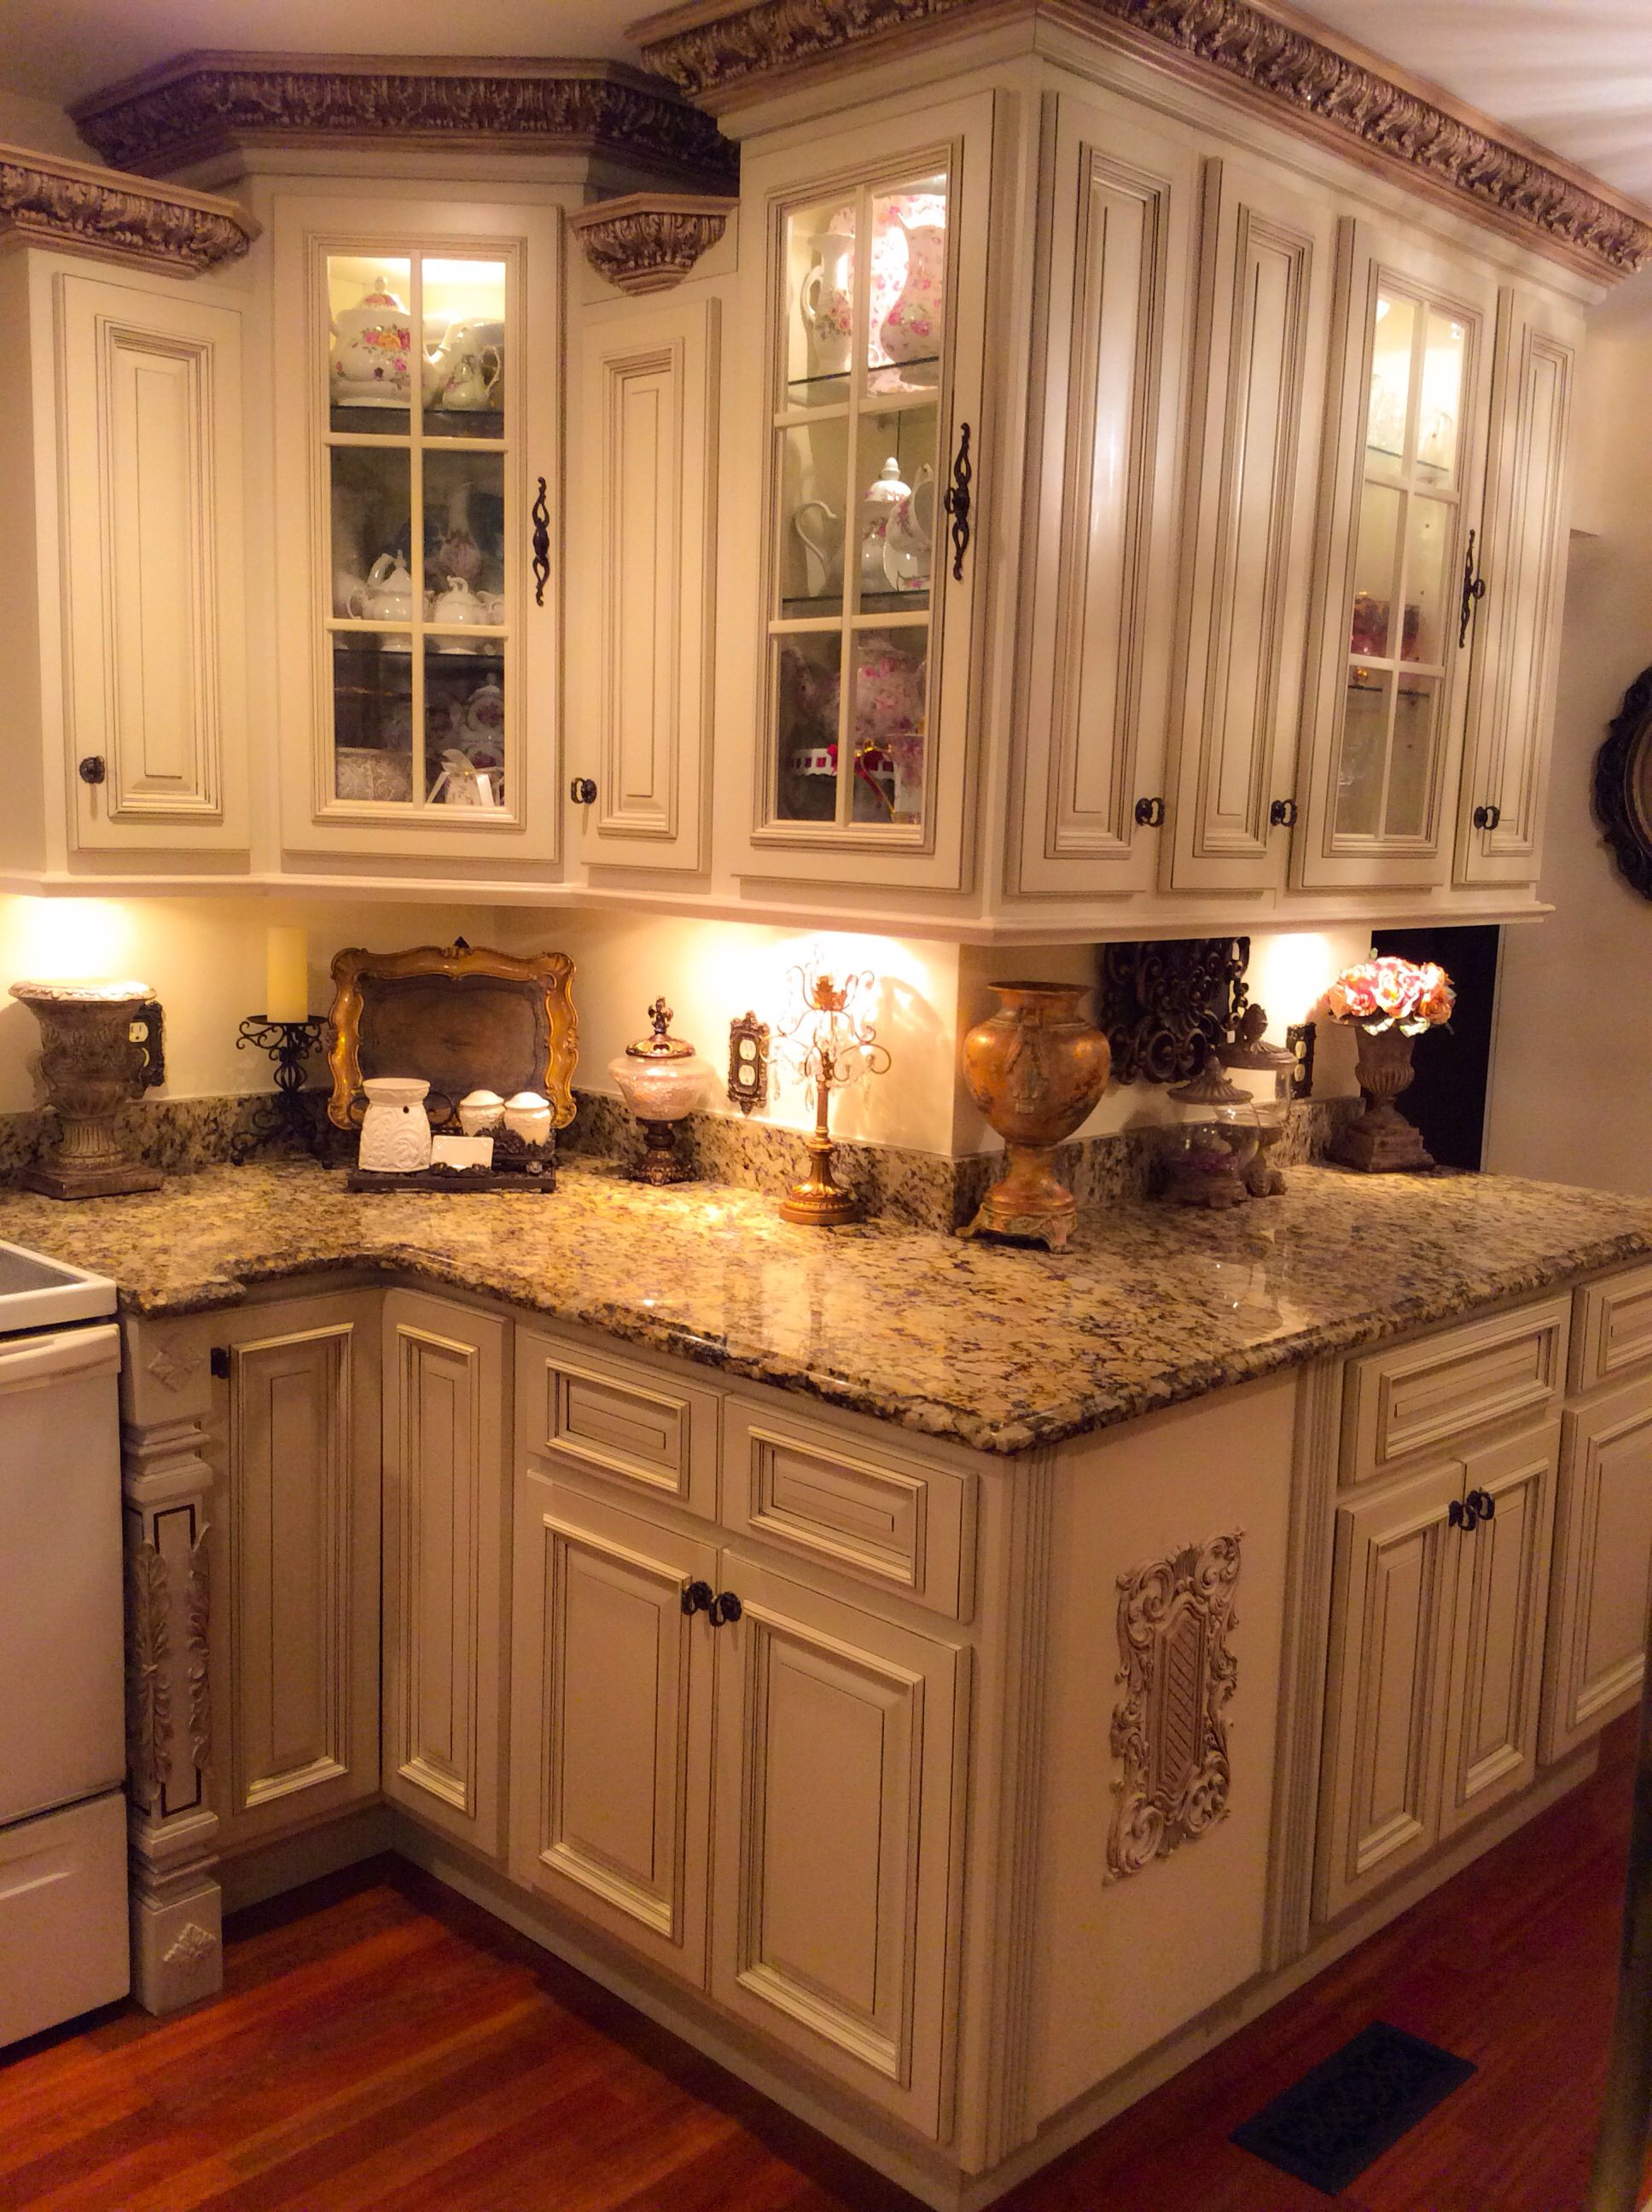 I hand painted the crown moldings, embellished the ...